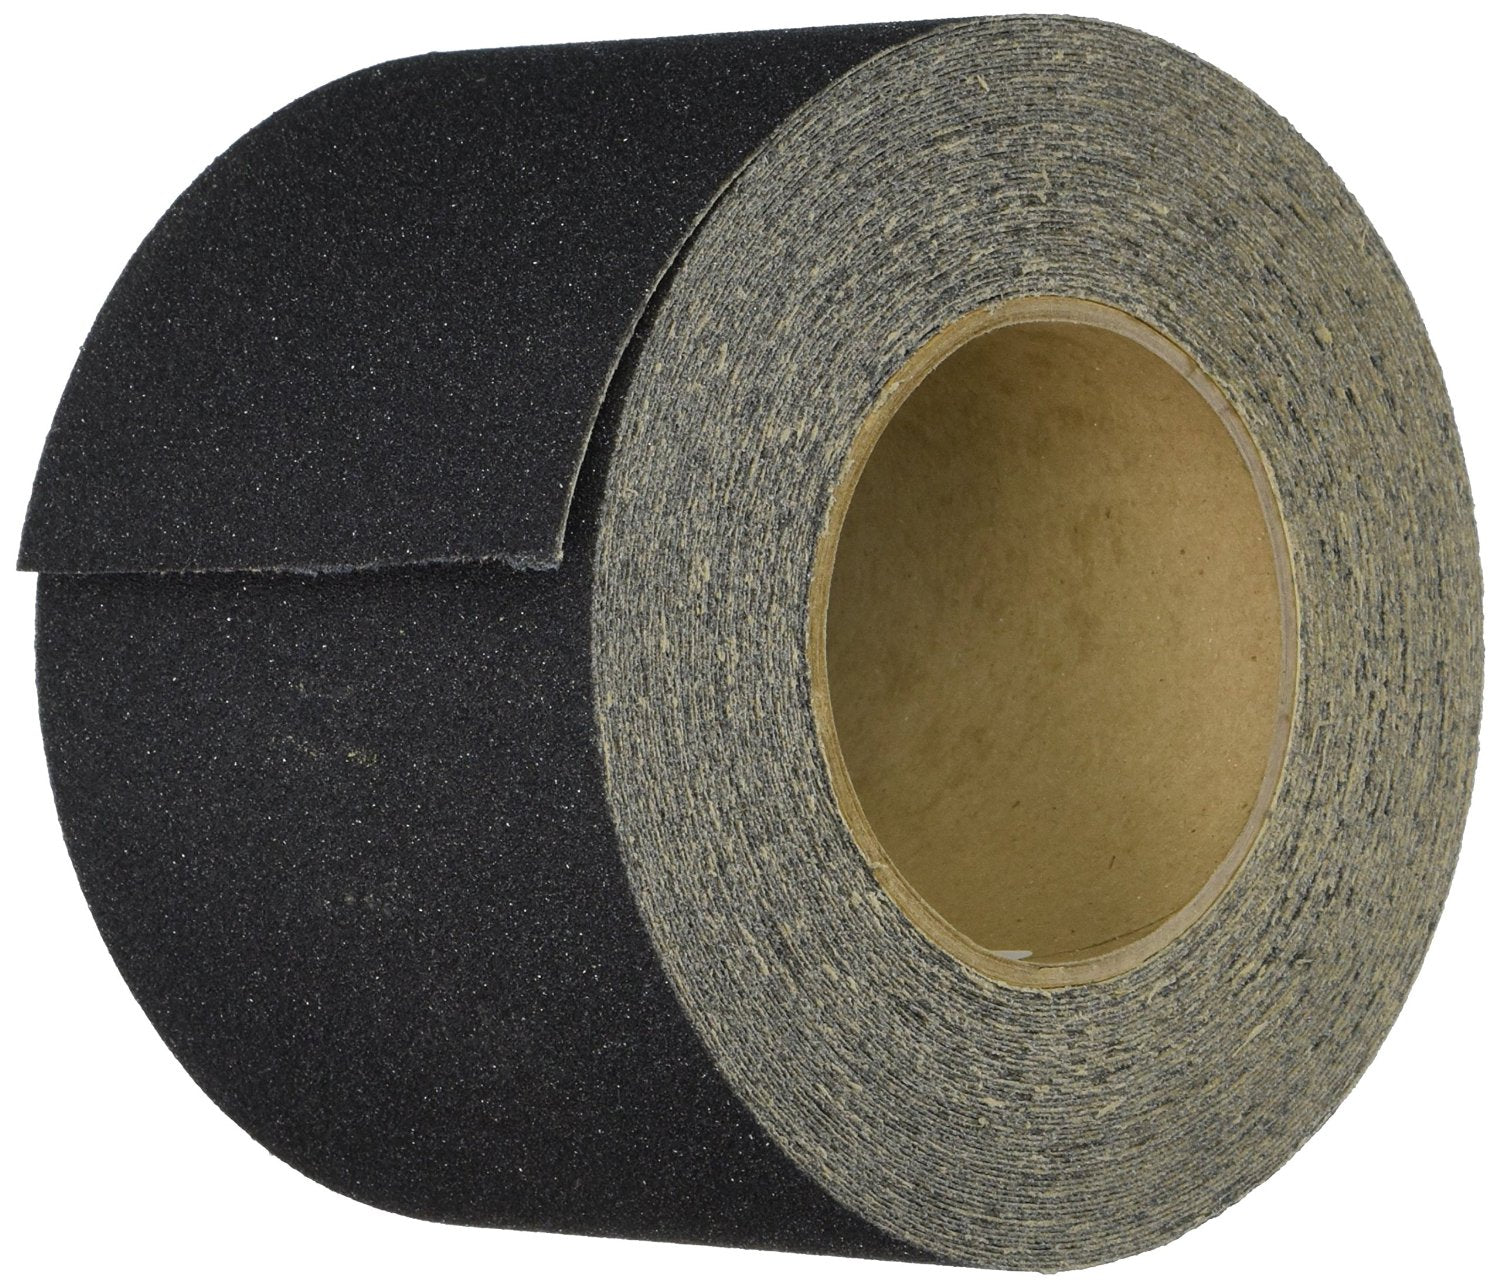 Black 80 Grit Non-Slip Tape - Multiple Sizes / Options